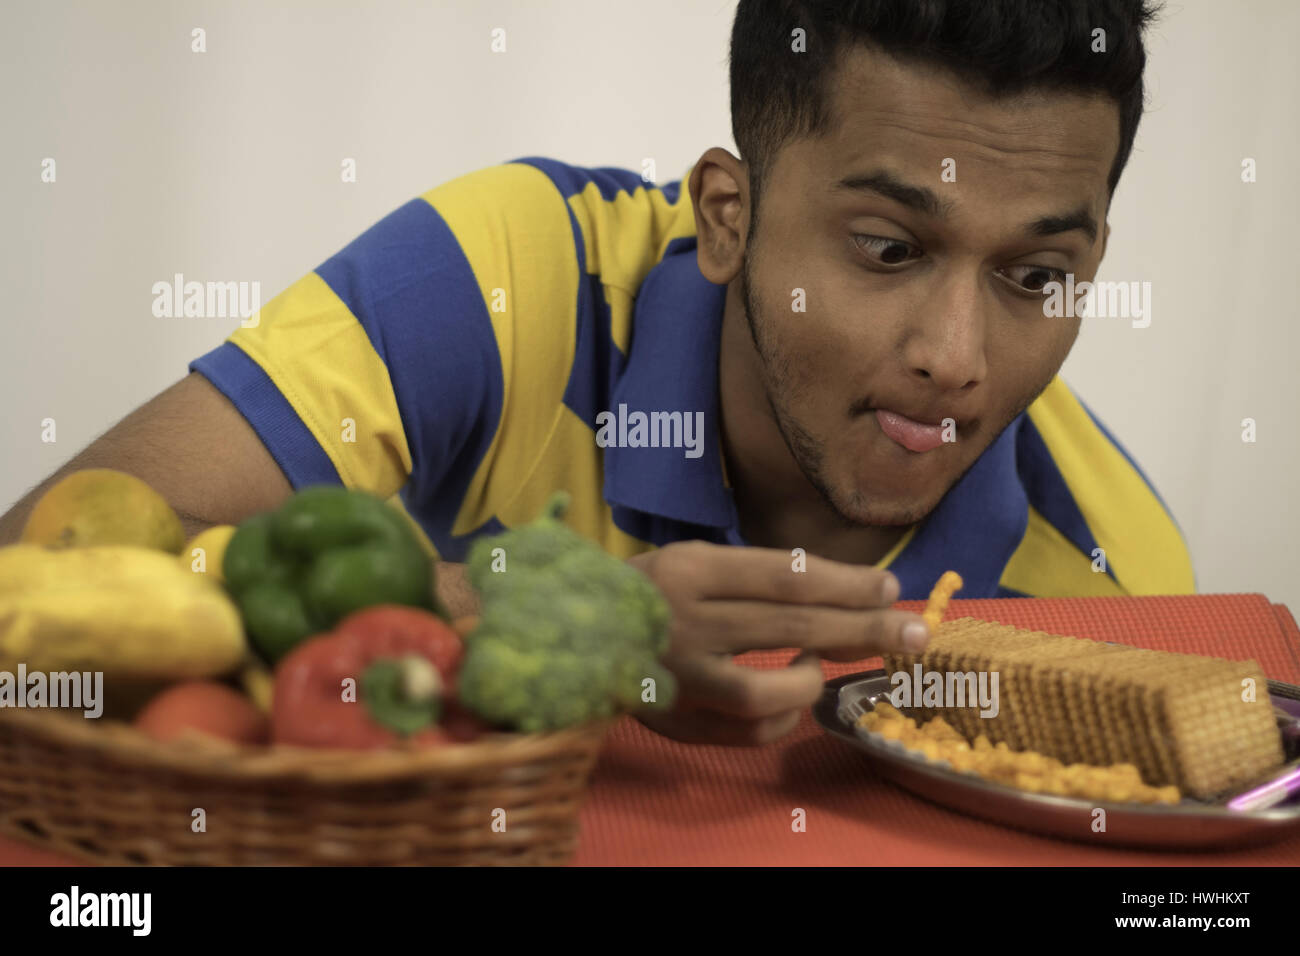 Man craving the sweet salty unhealthy food over the healthy fruits and veggie basket - Stock Image